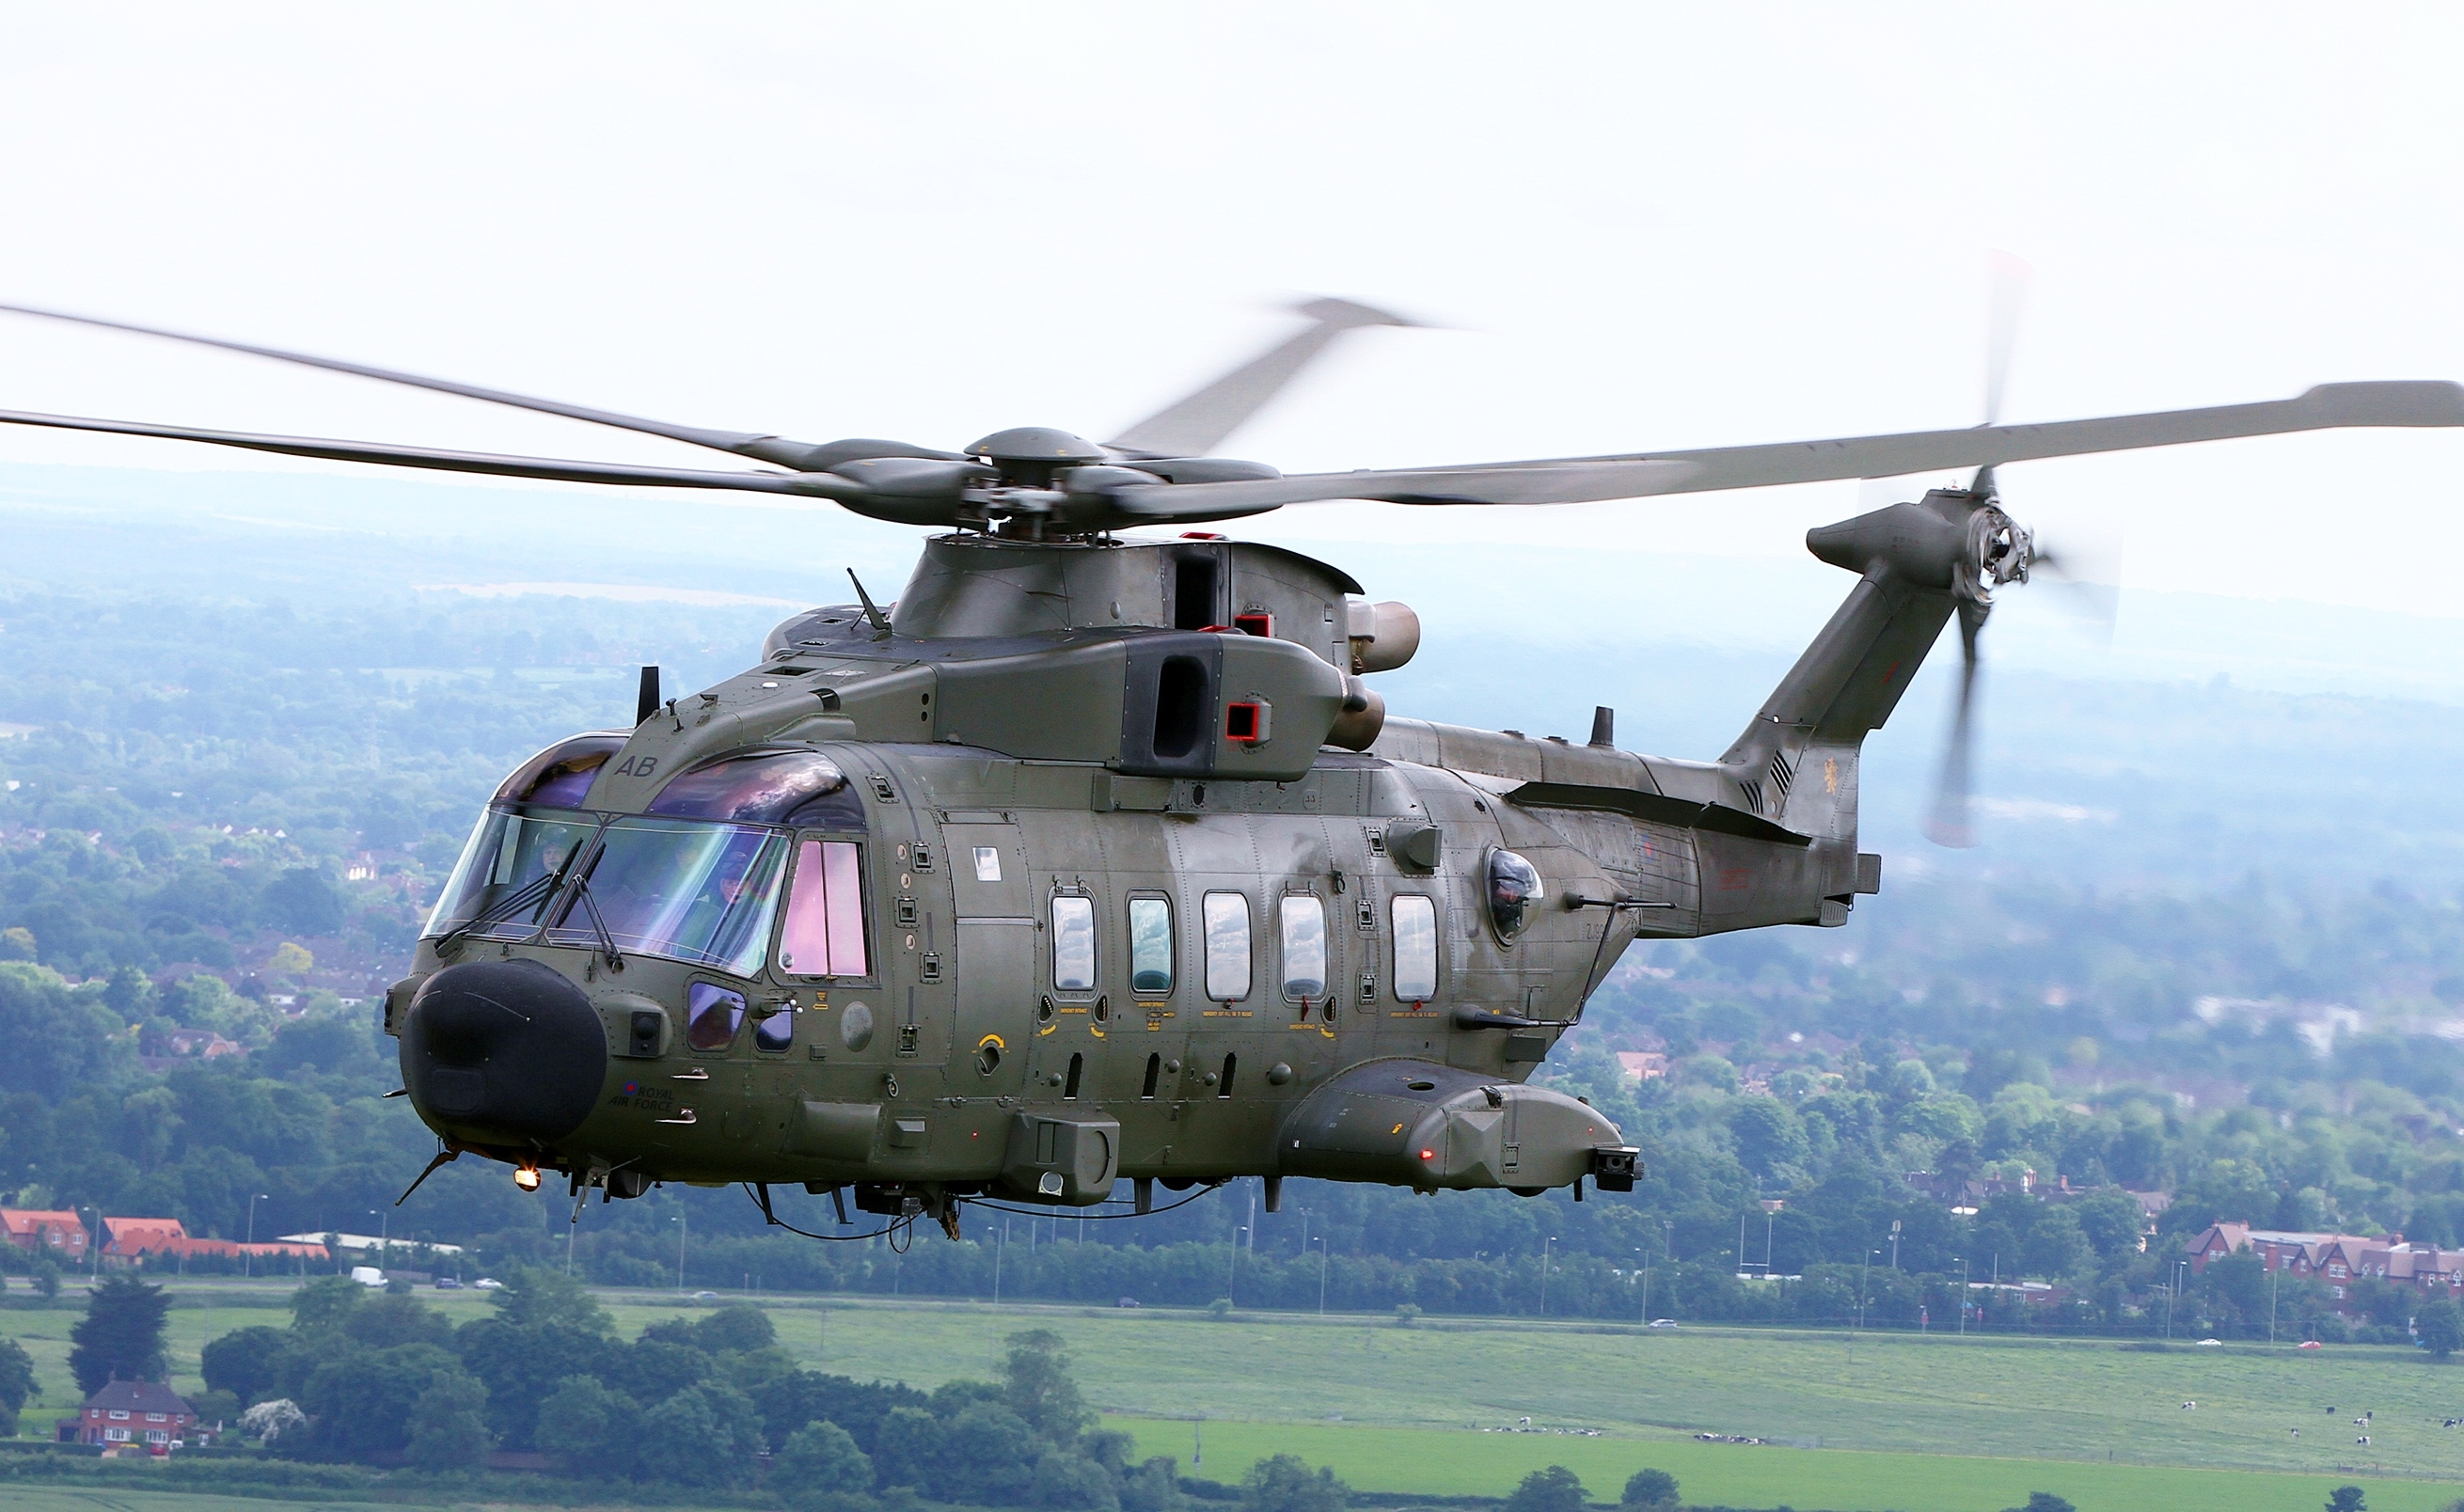 aw101 merlin helicopter with Agustawestland Aw101 on 10 Fastest Helicopters In The World likewise Yeov13 02 together with 872 together with Watch further Agustawestland E Sikorsky  petem Por Venda De Helicopteros Para Dinamarca.